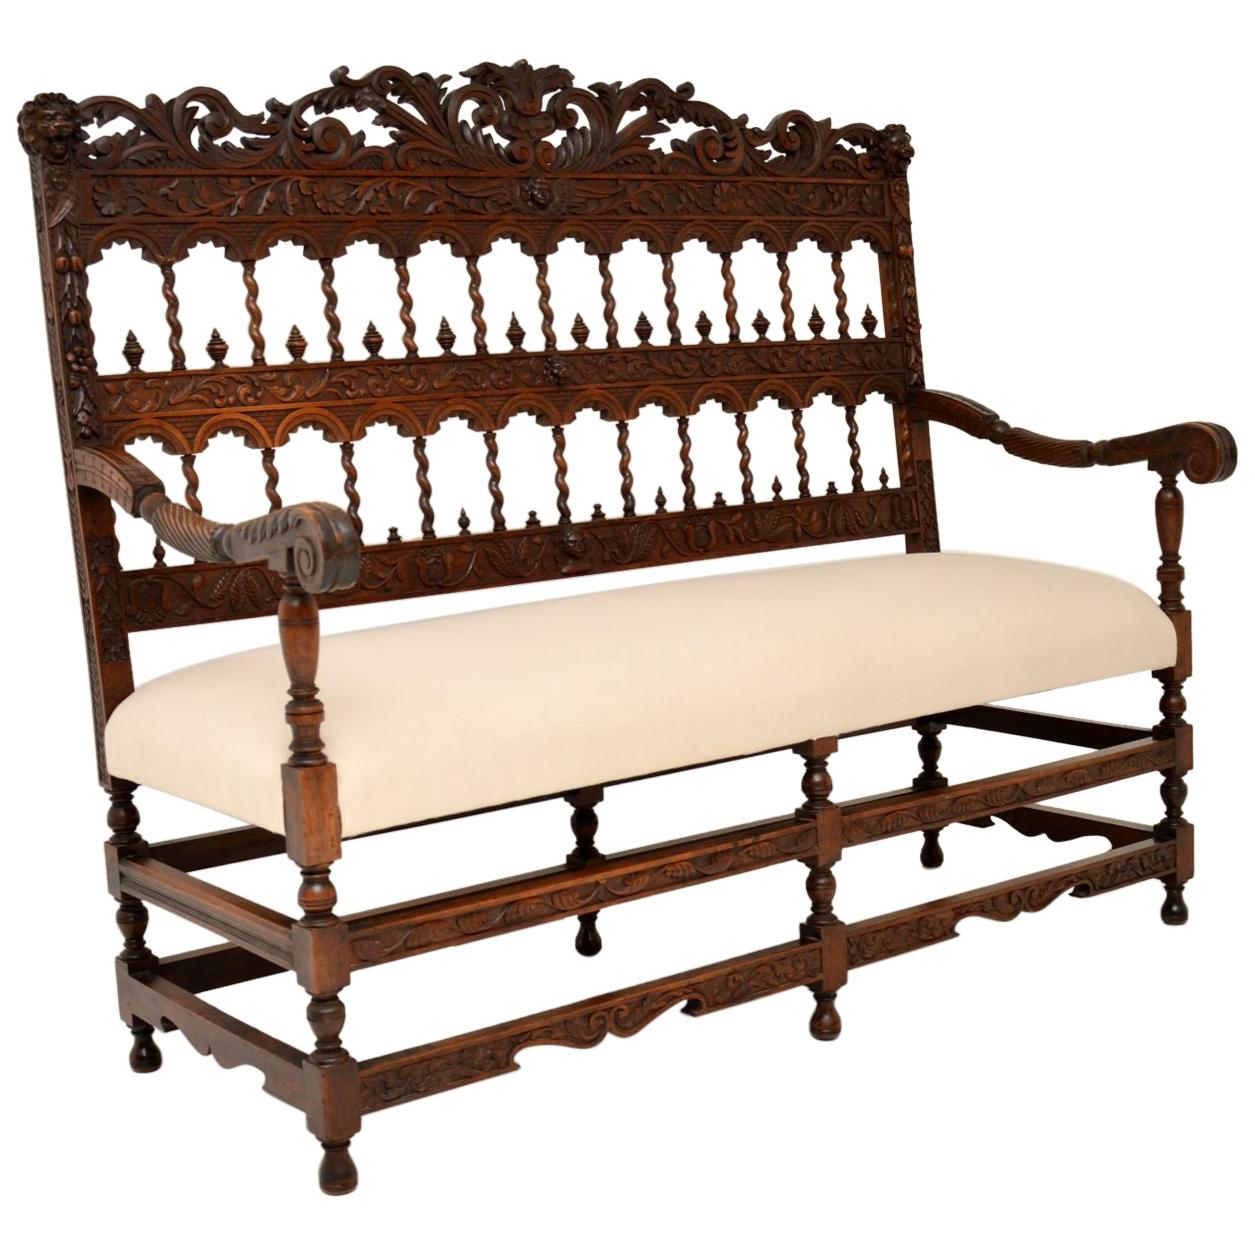 Very Impressive Antique Finely Carved Walnut Settee